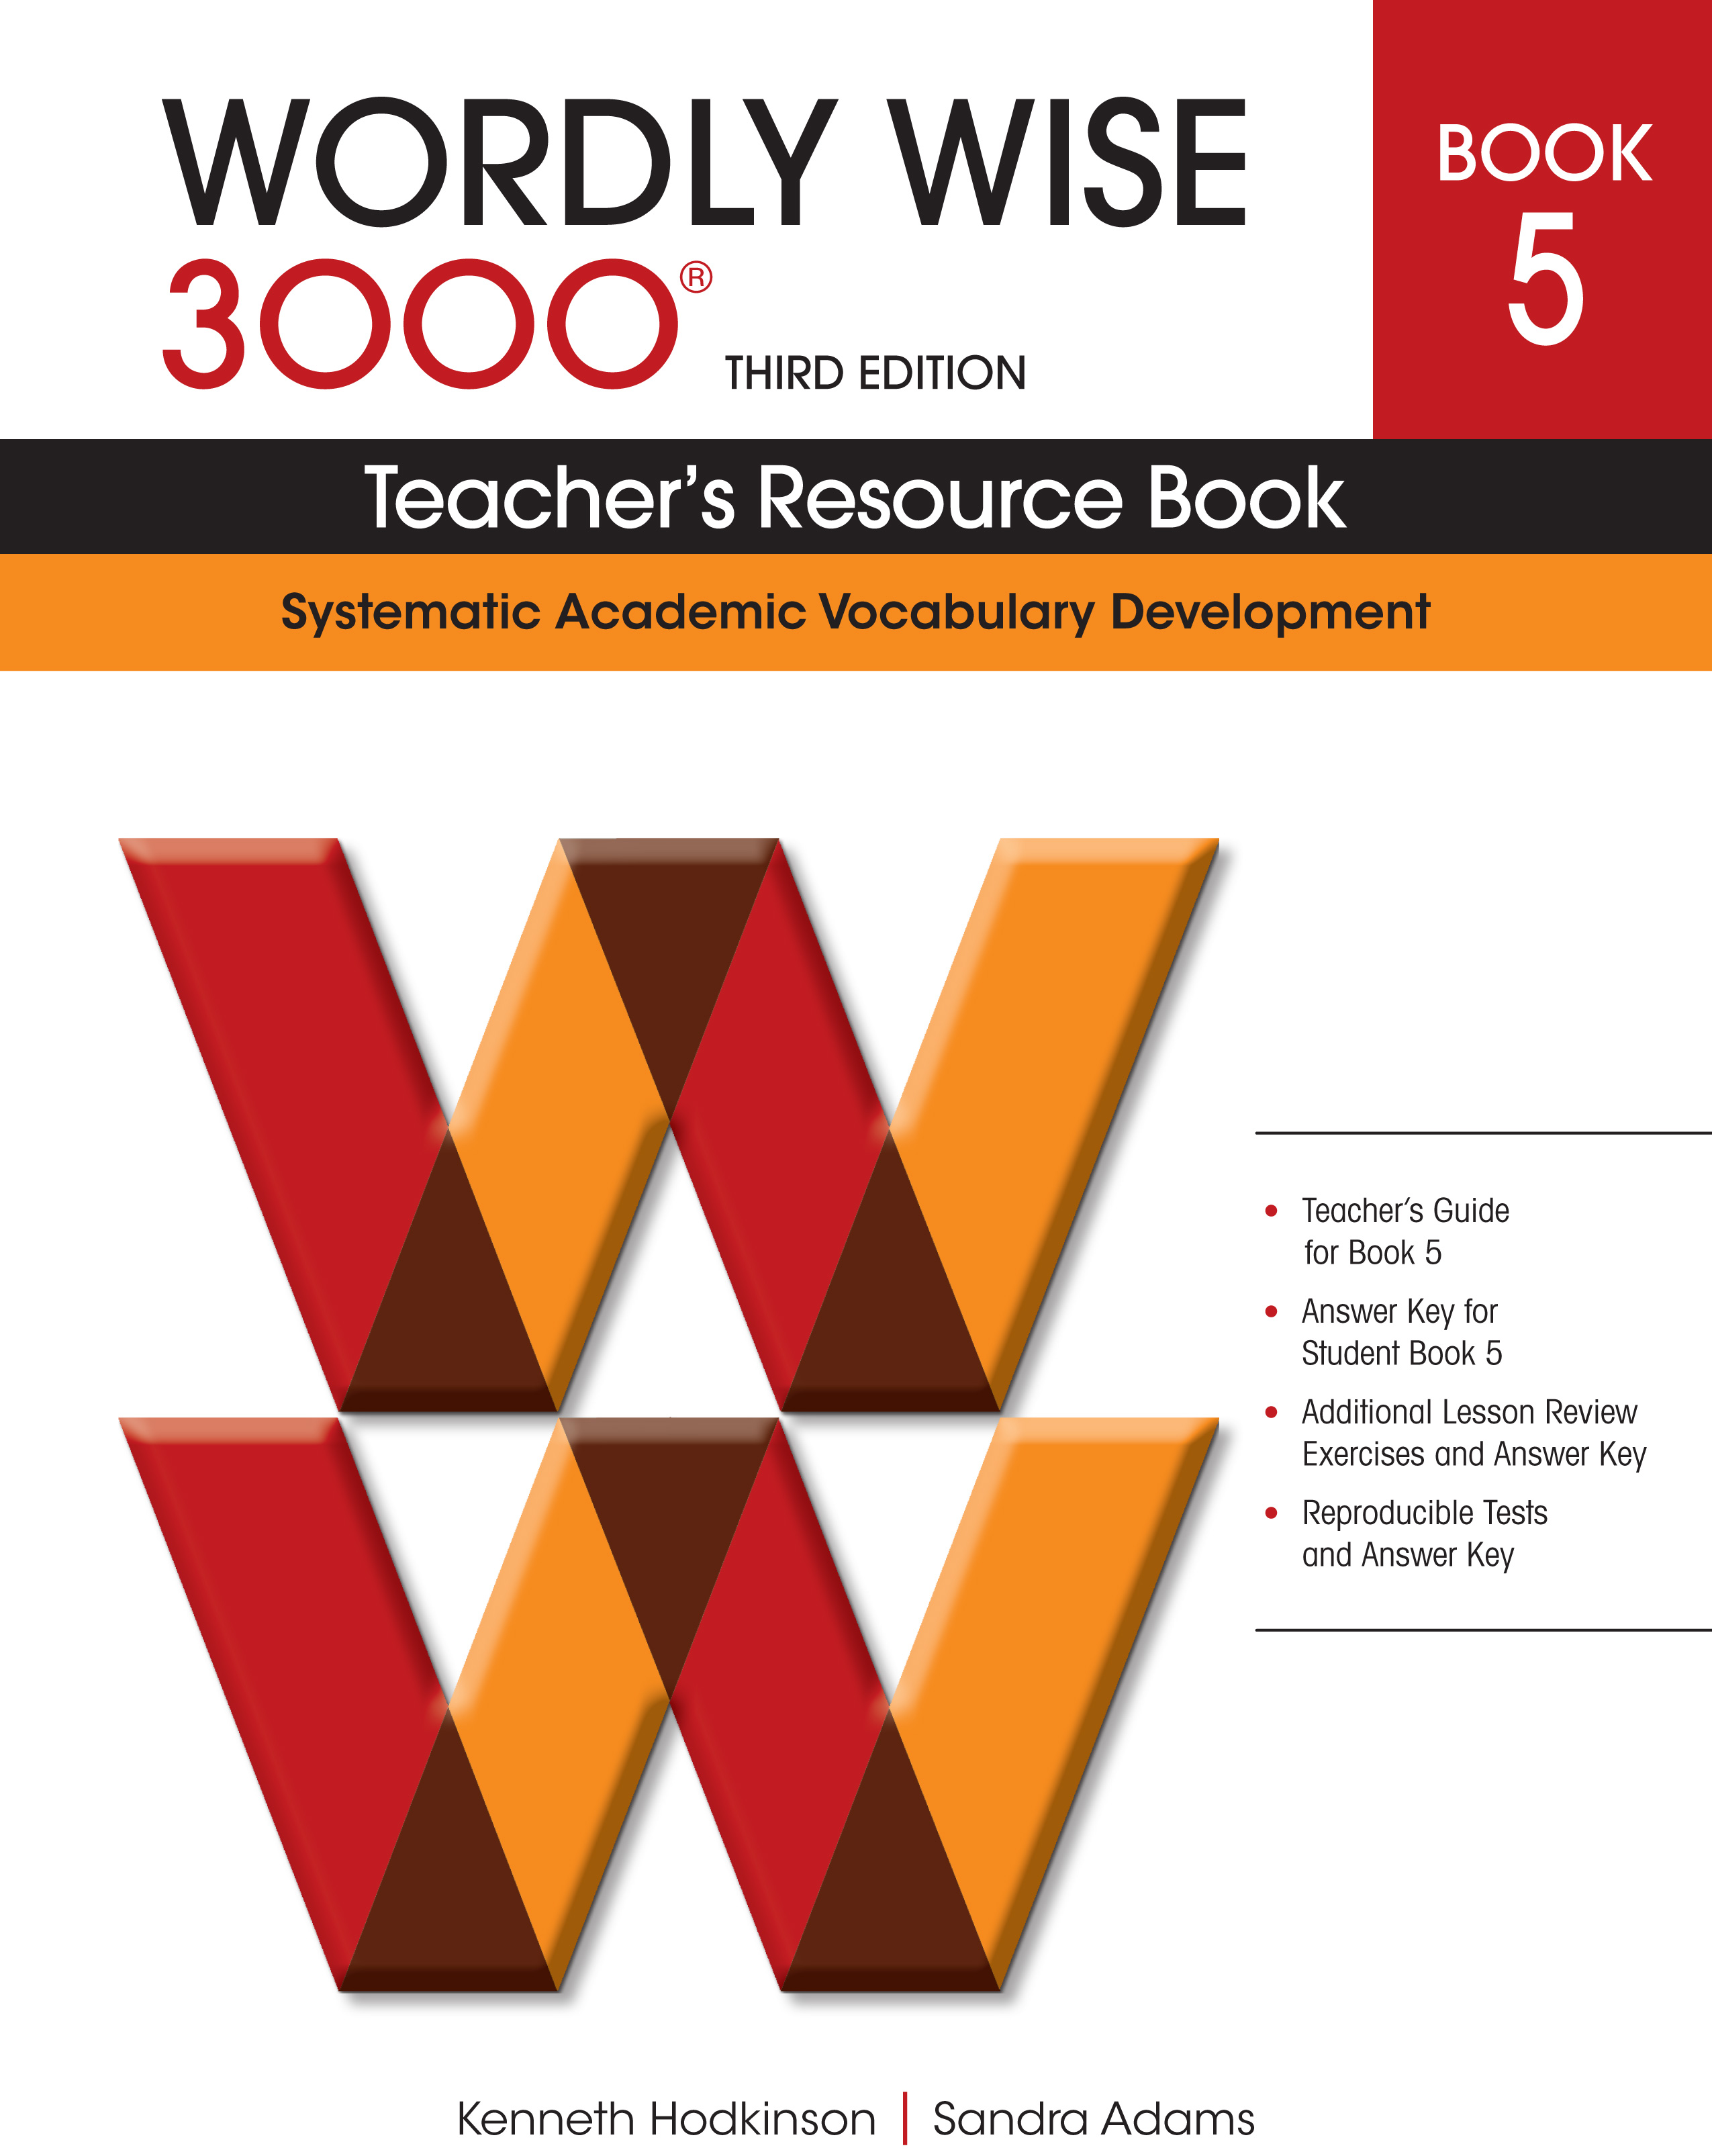 Wordly Wise 3000® 3rd Edition Teacher's Resource Book 5